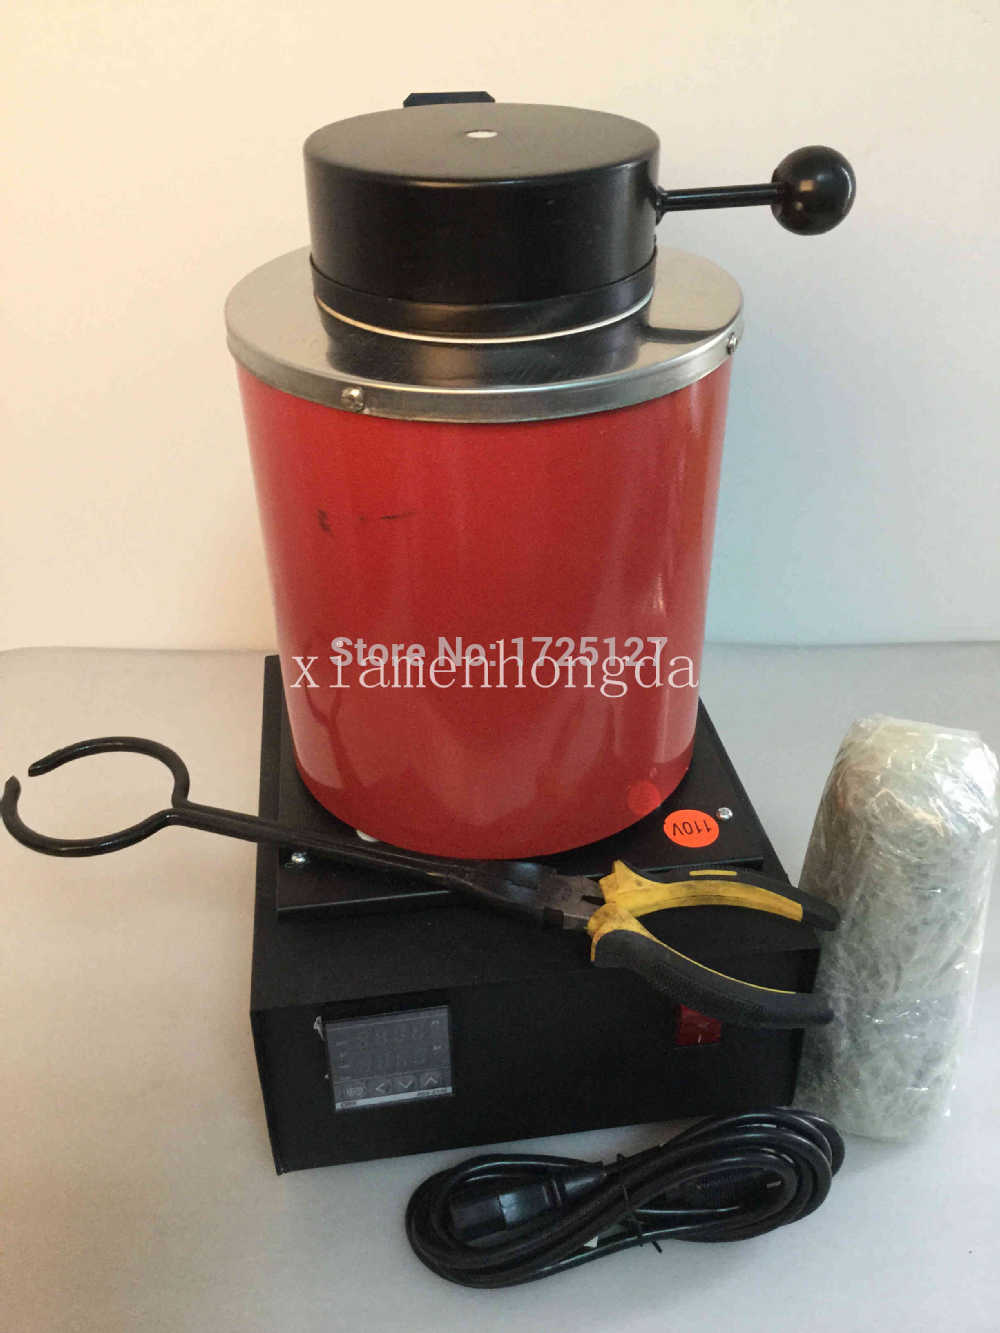 FREE SHIPPING AUTOMATIC ELECTRIC MELTING FURNACE SILVER & GOLD POUR BAR +2KG CRUCIBLE+ TONG - DIGITAL CONTROLER 110V &220V free shipping jewelry making tools 110v 2kg mini gold melting furnace electric melting furnace with tong crucible goldsmith